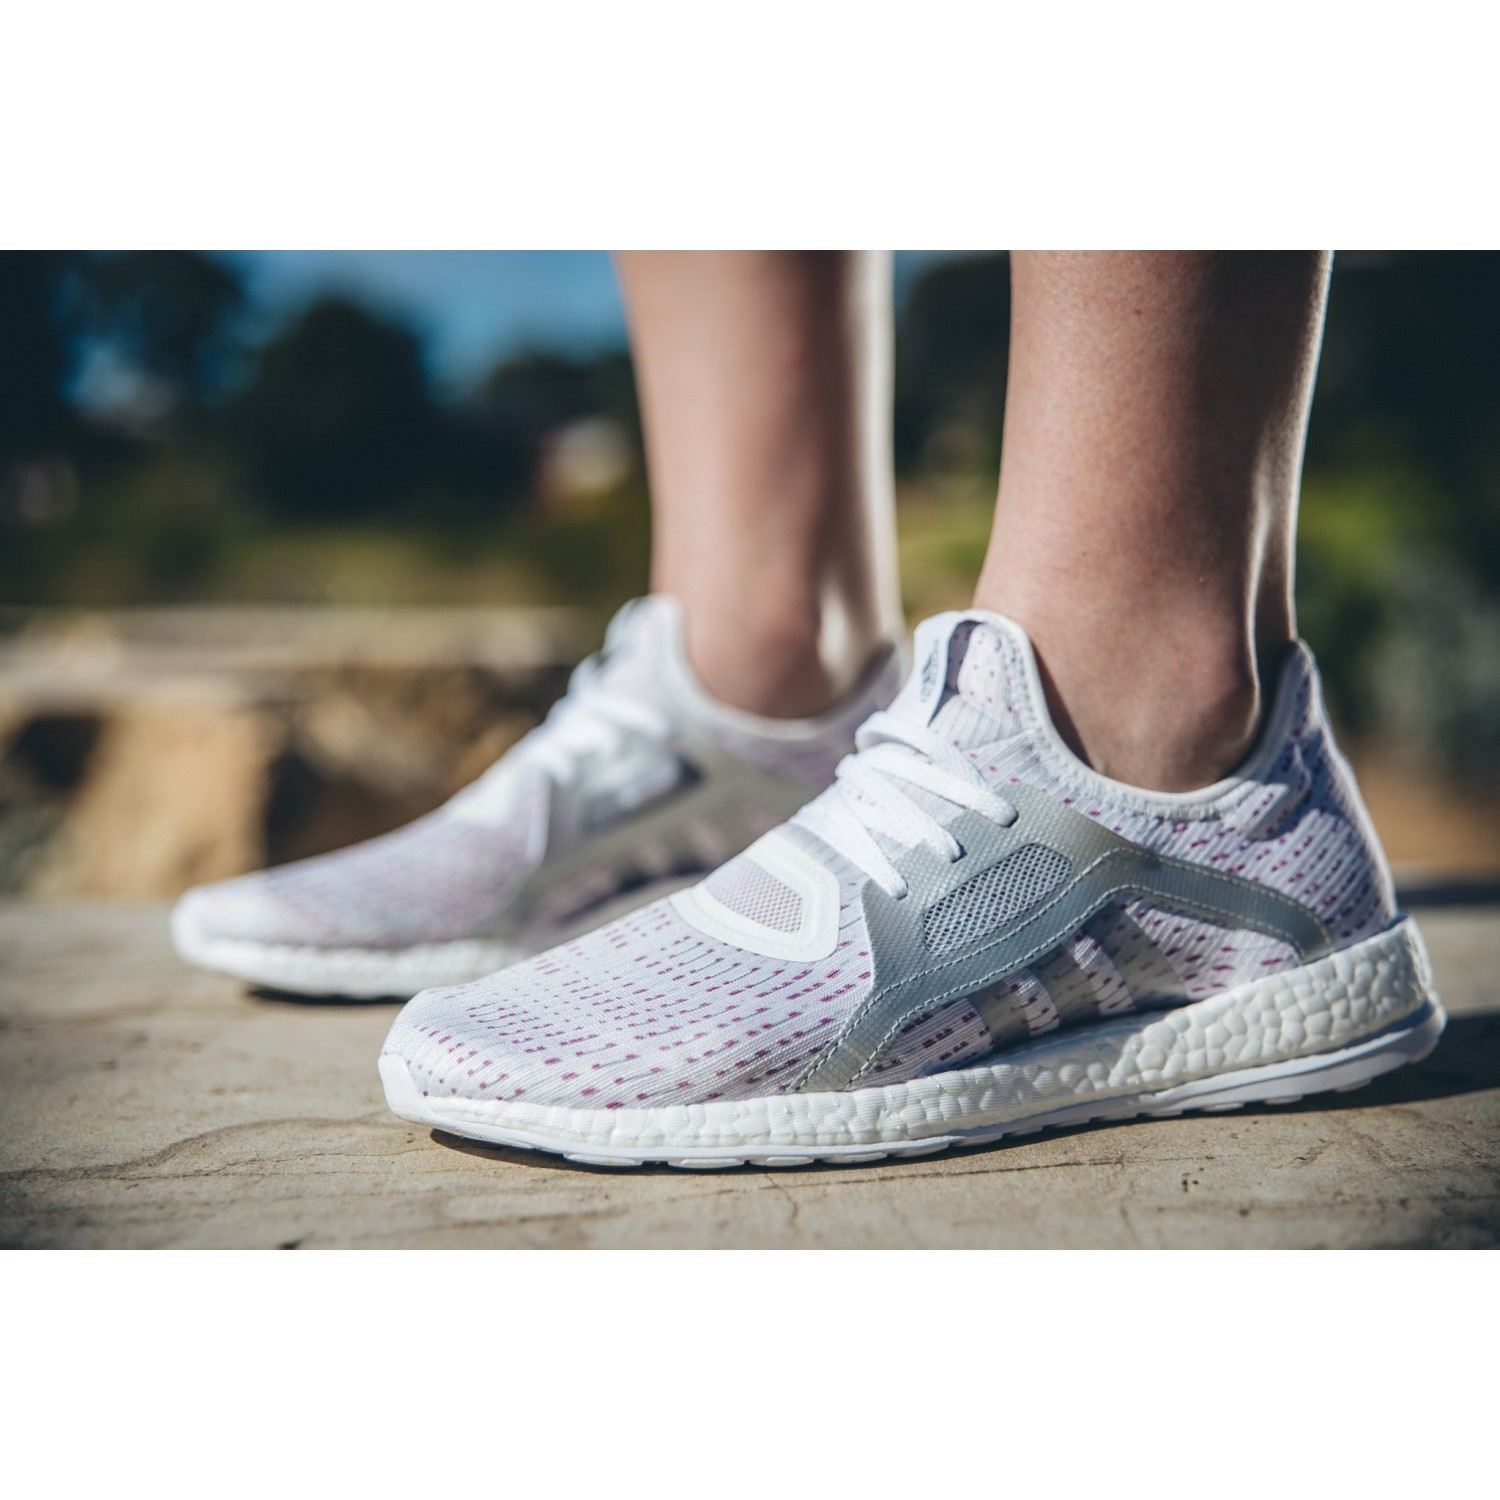 96282ef30 Adidas Pure Boost X - Womens Running Shoes - White Silver Metallic ...